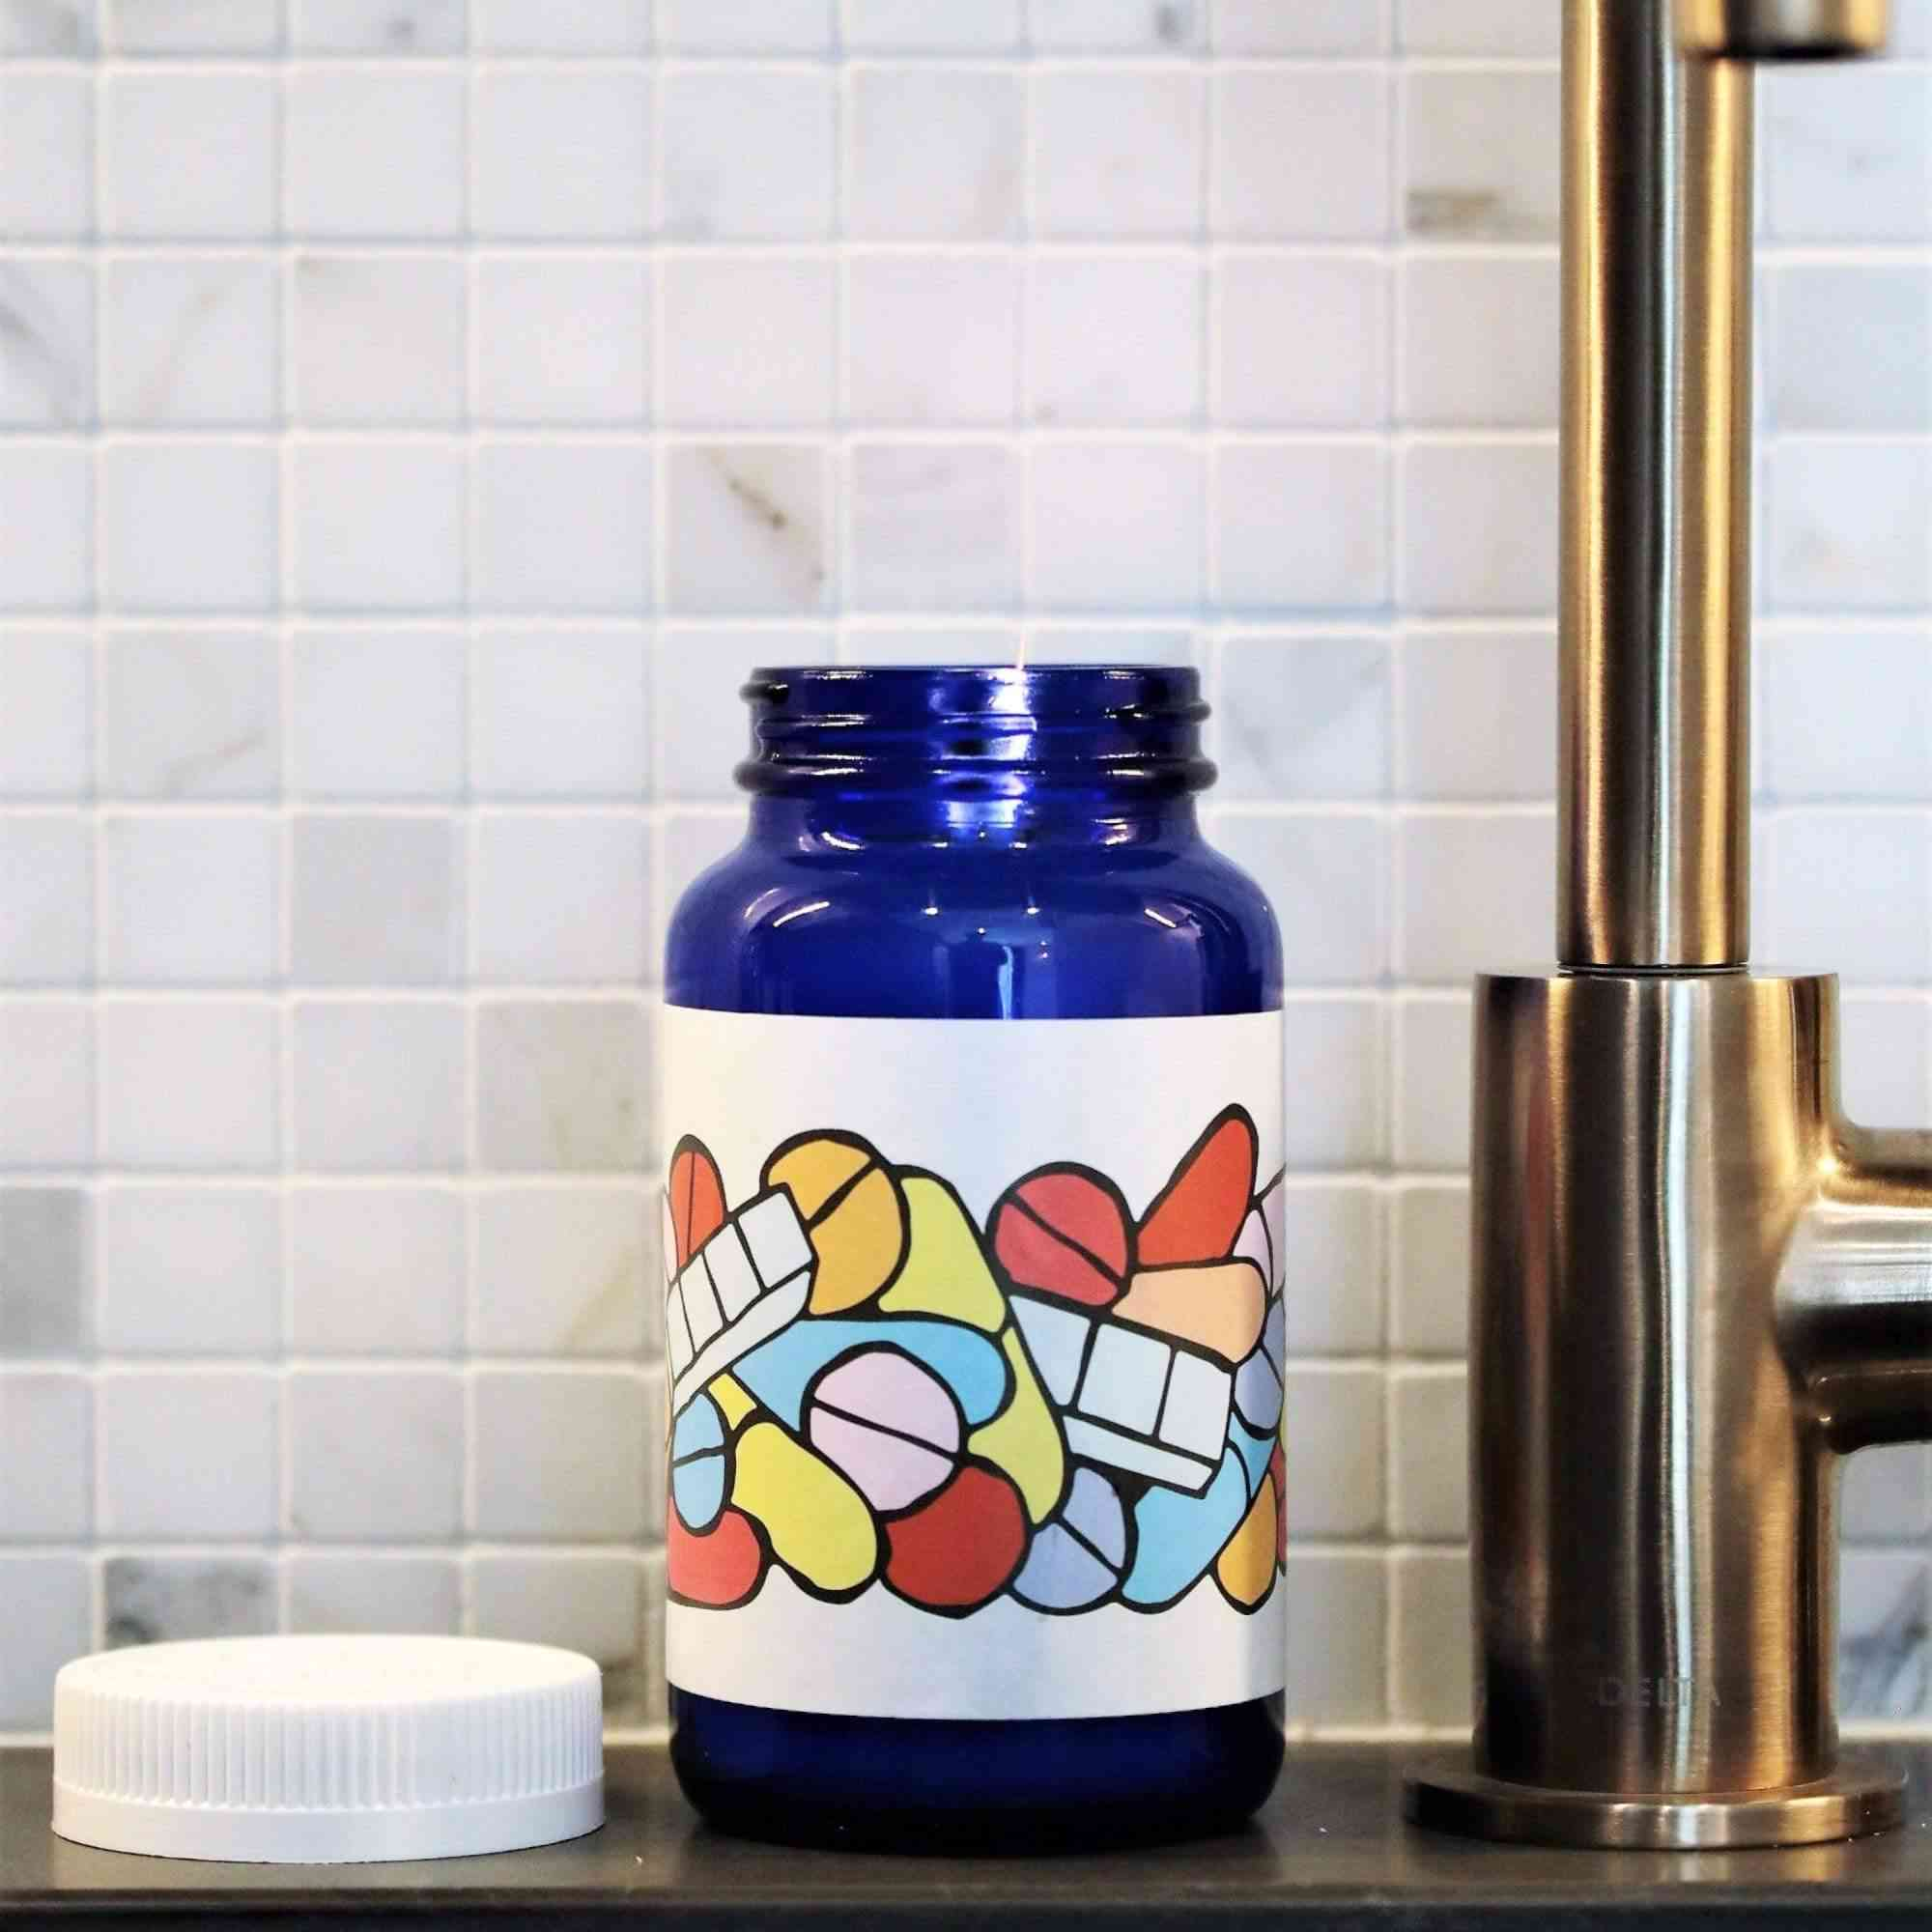 Thompson Ferrier's Pills Candle